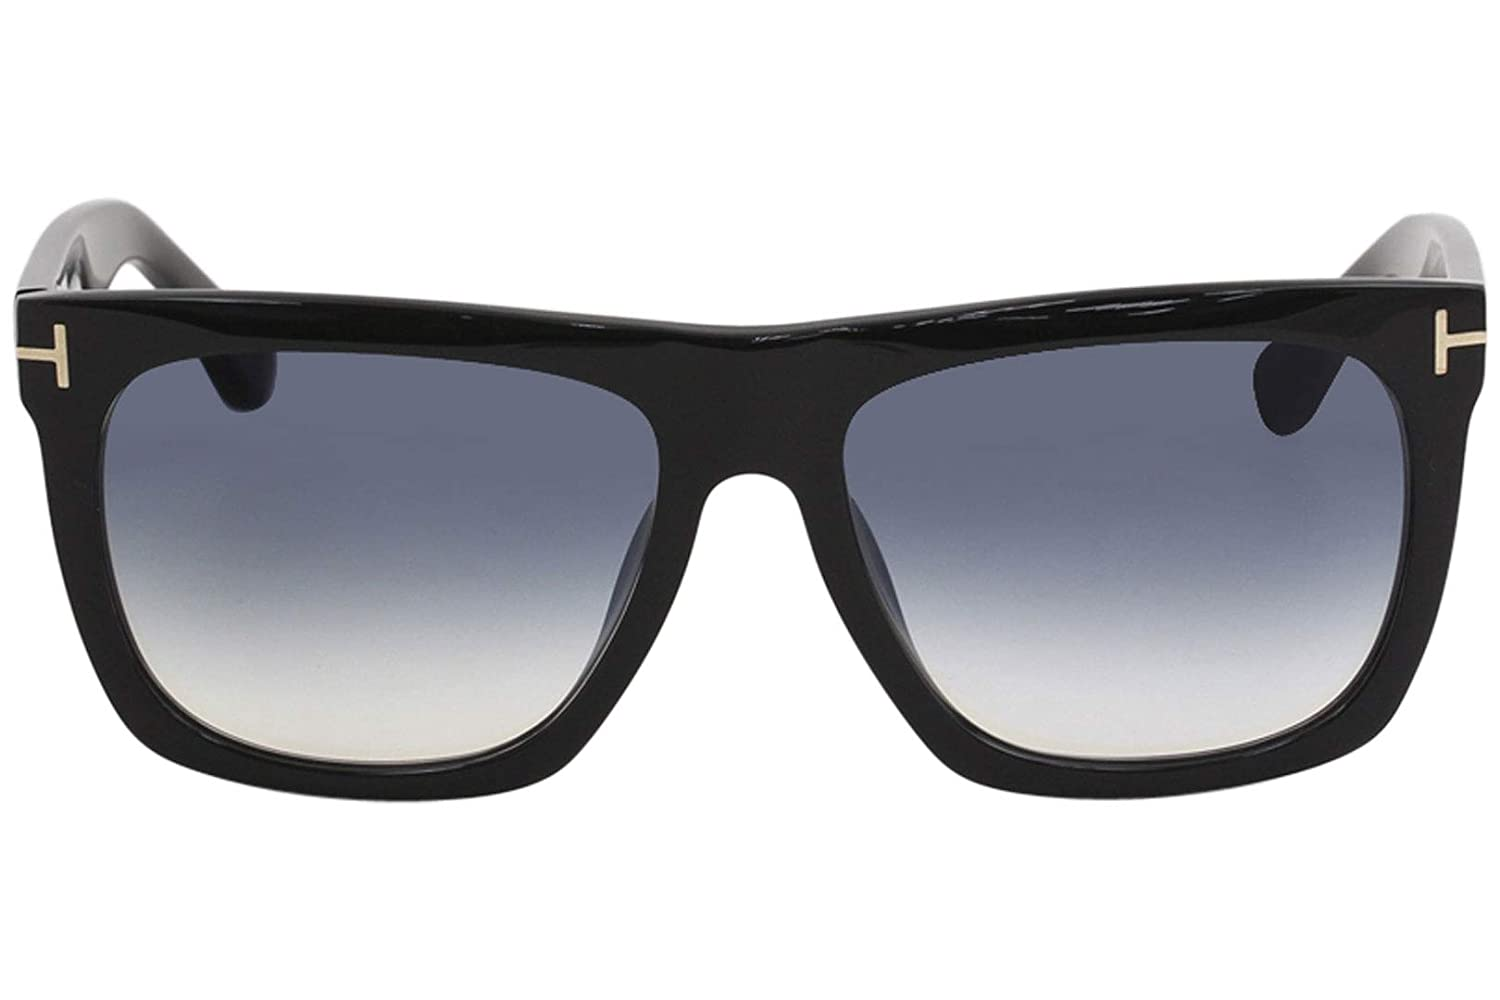 Tom Ford FT0513 01W Shiny Black Morgan Square Sunglasses Lens Category 2 Size 5